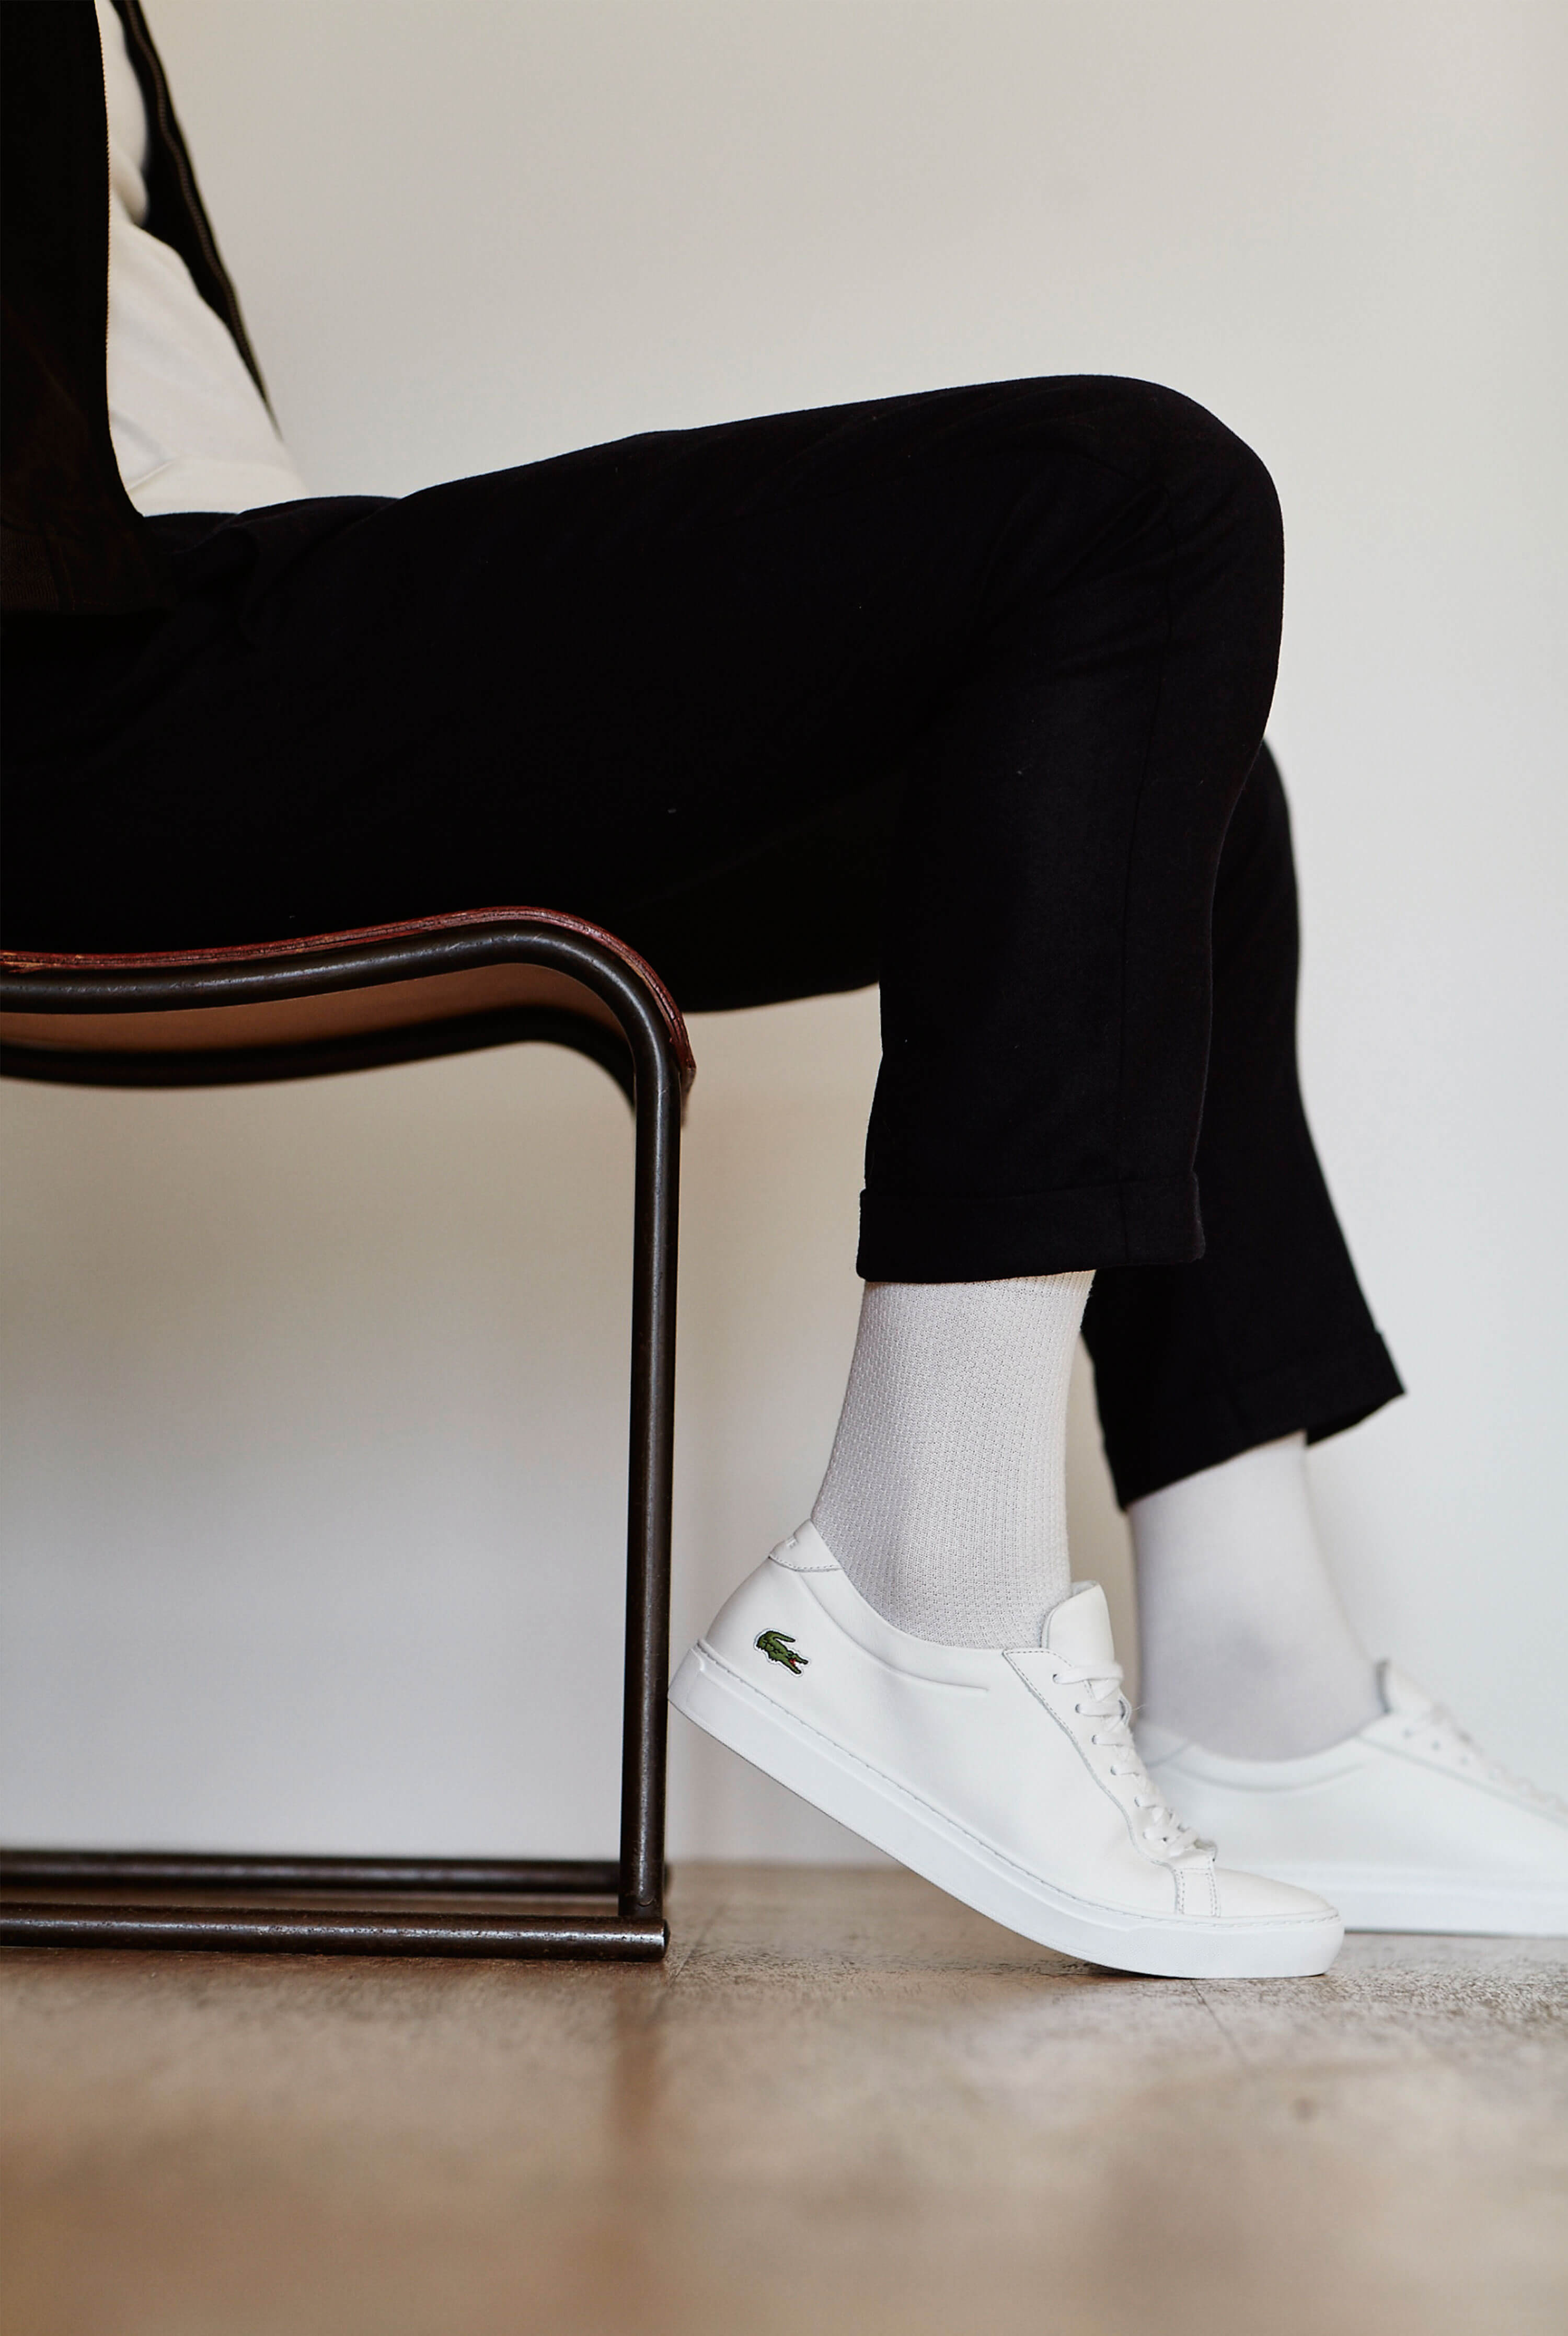 Tack Studio worked with Lacoste and designer James Patmore to bring alive the Lacoste L.12.12 shoe.